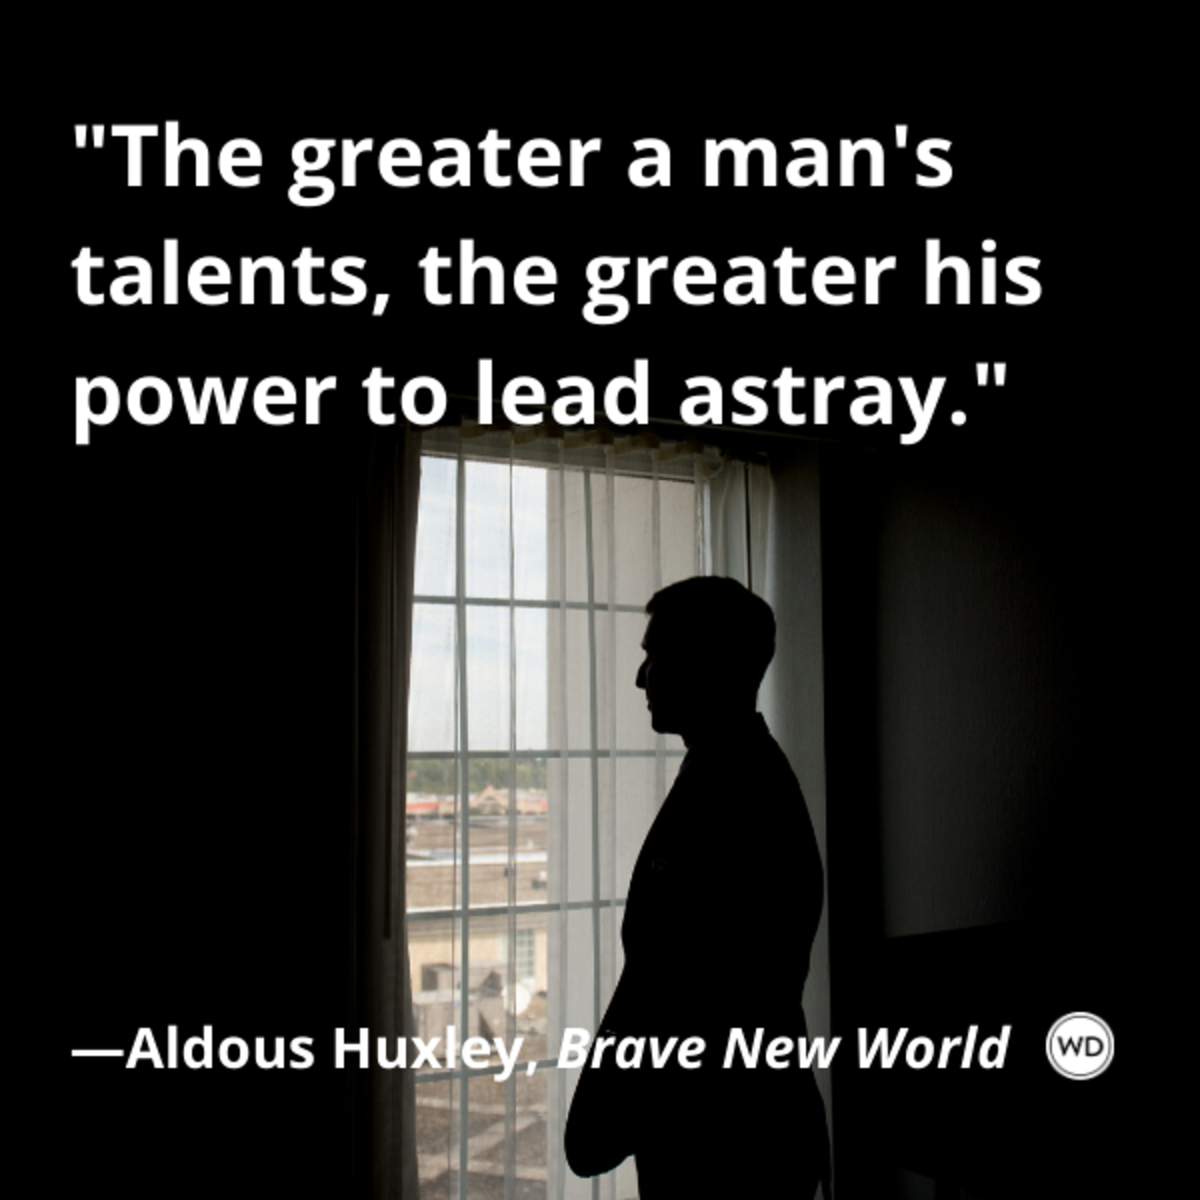 aldous_huxley_brave_new_world_quotes_the_greater_a_mans_talents_the_greater_his_power_to_lead_astray